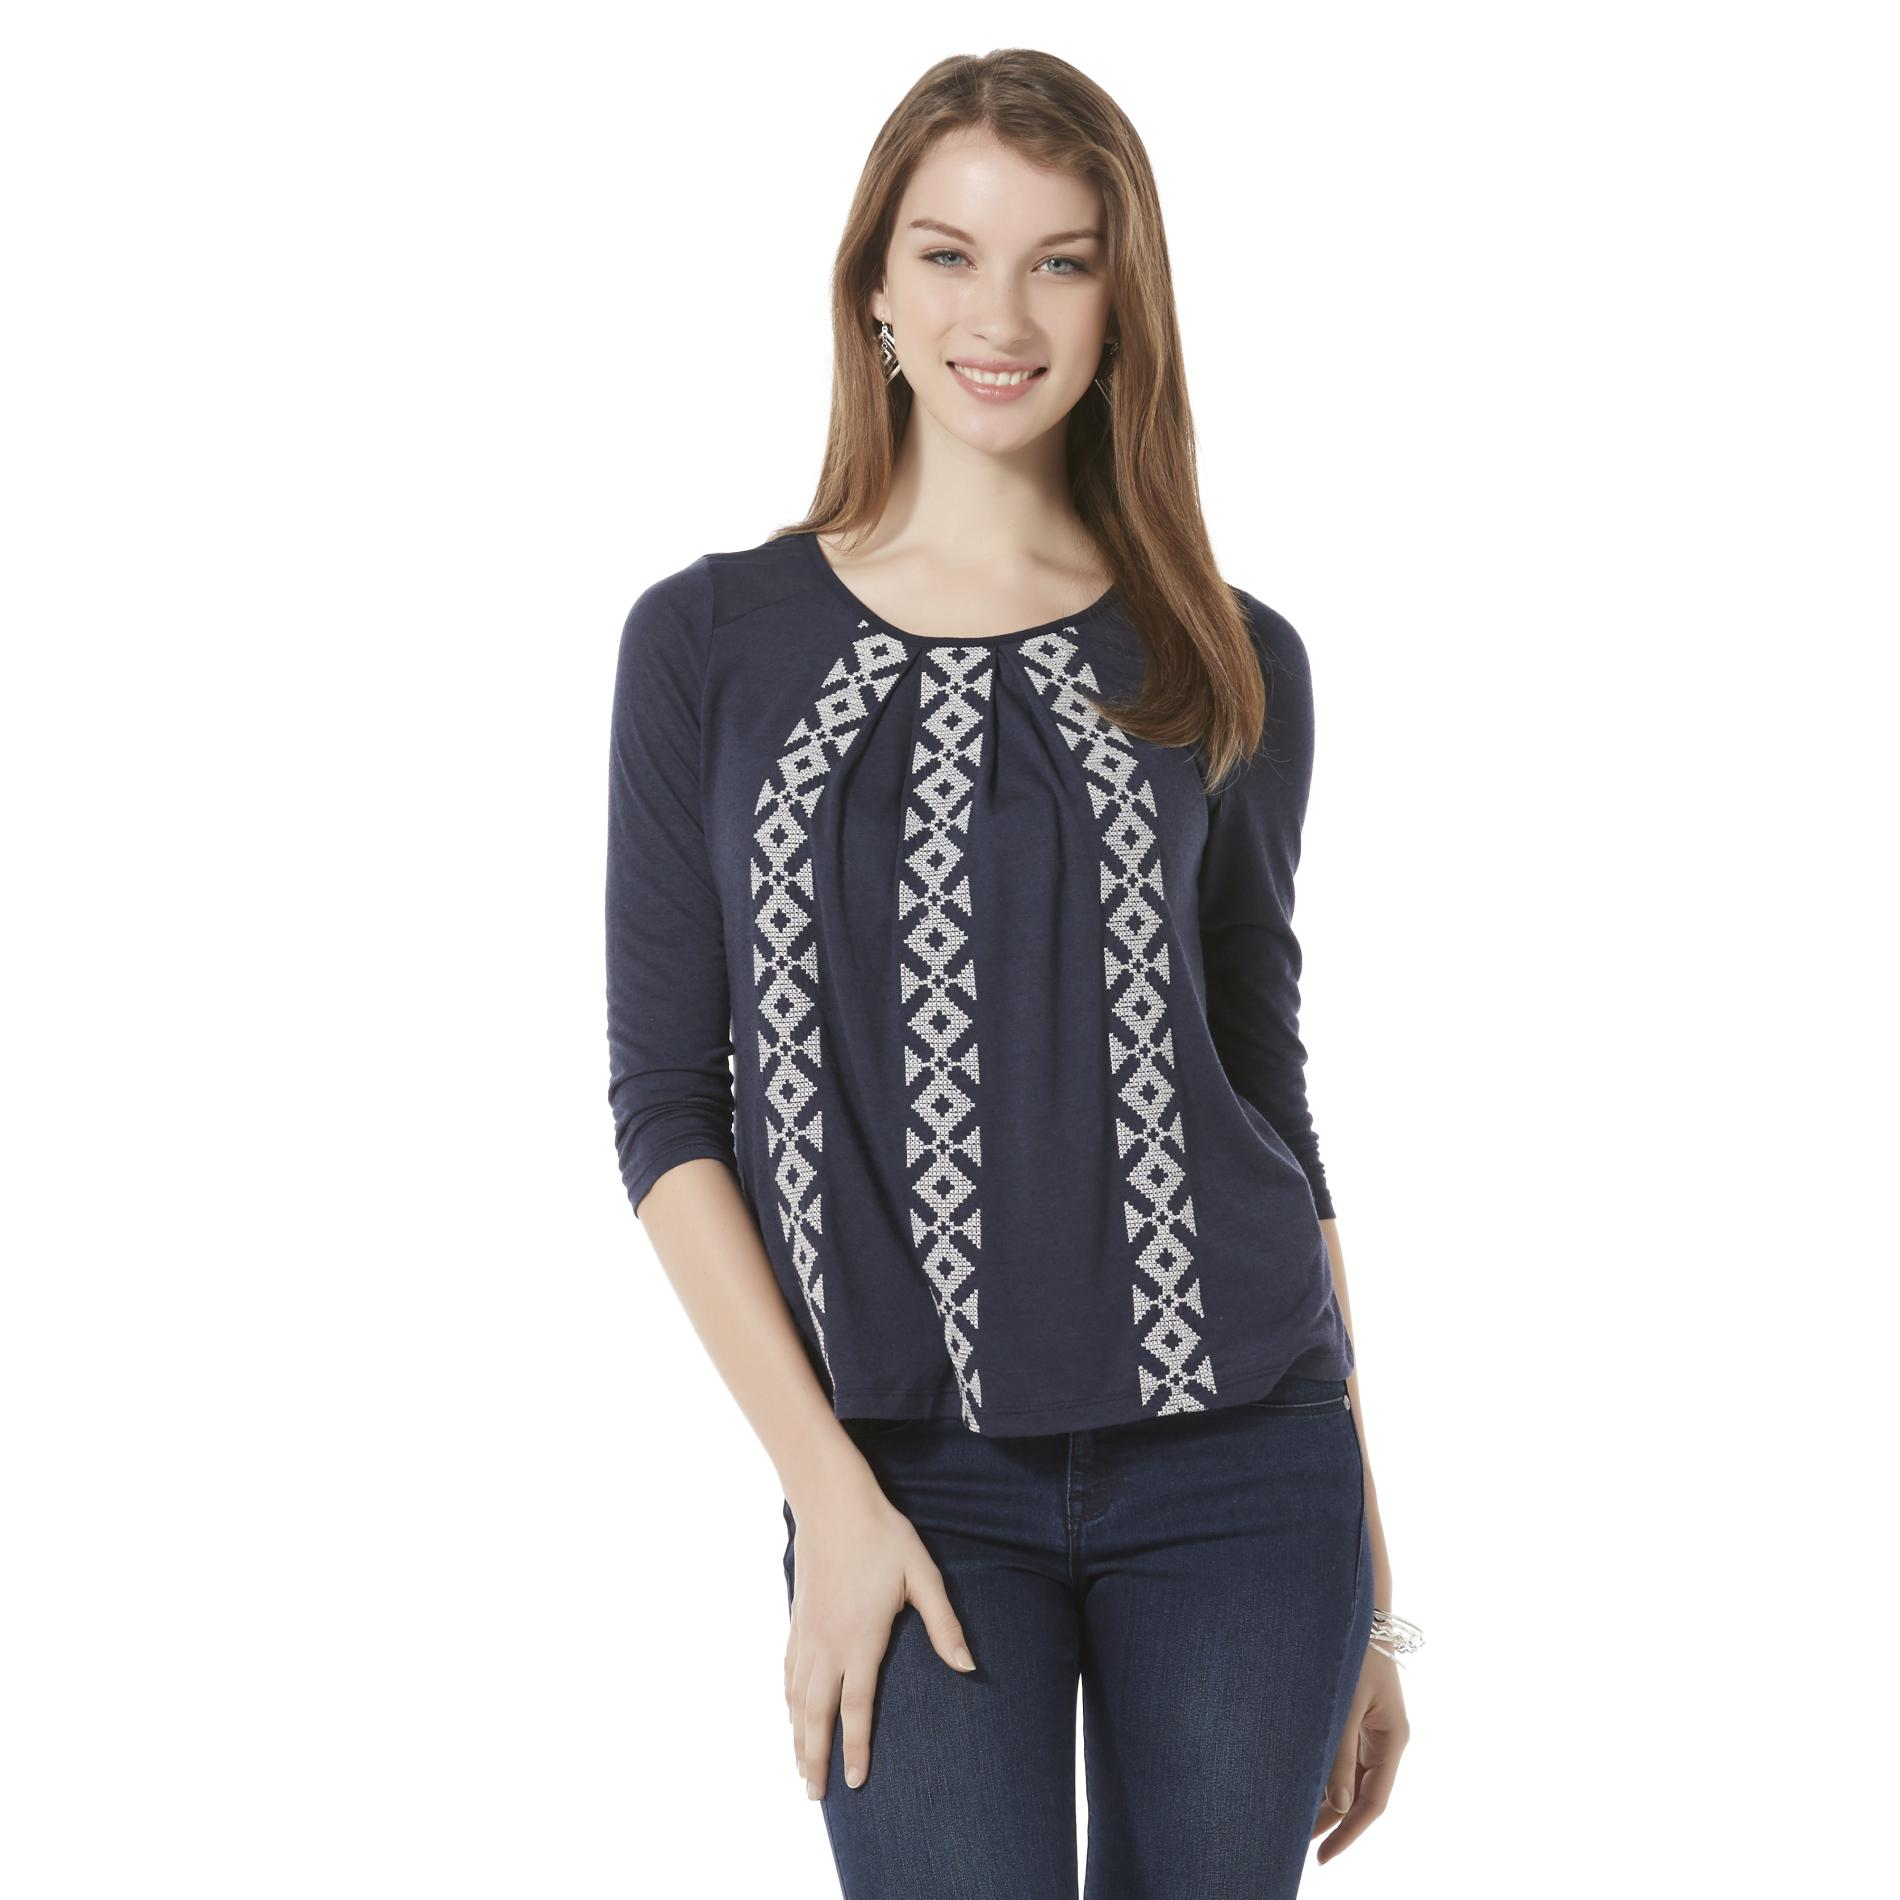 Attention Women's Embroidered T-Shirt - Geometric